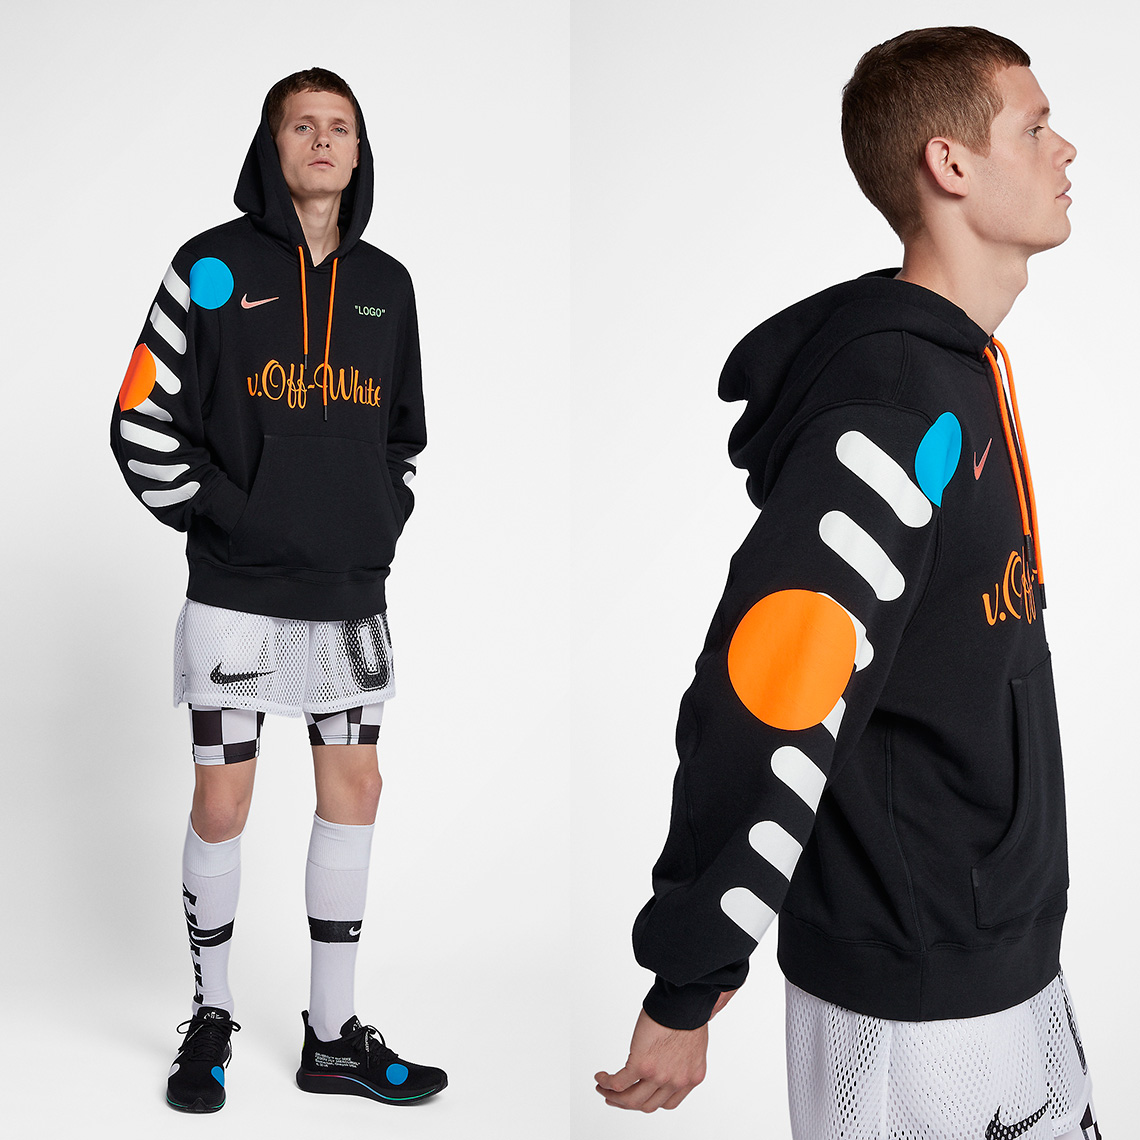 The Off White X Nike Quot Football Mon Amour Quot Set Drops Tomorrow